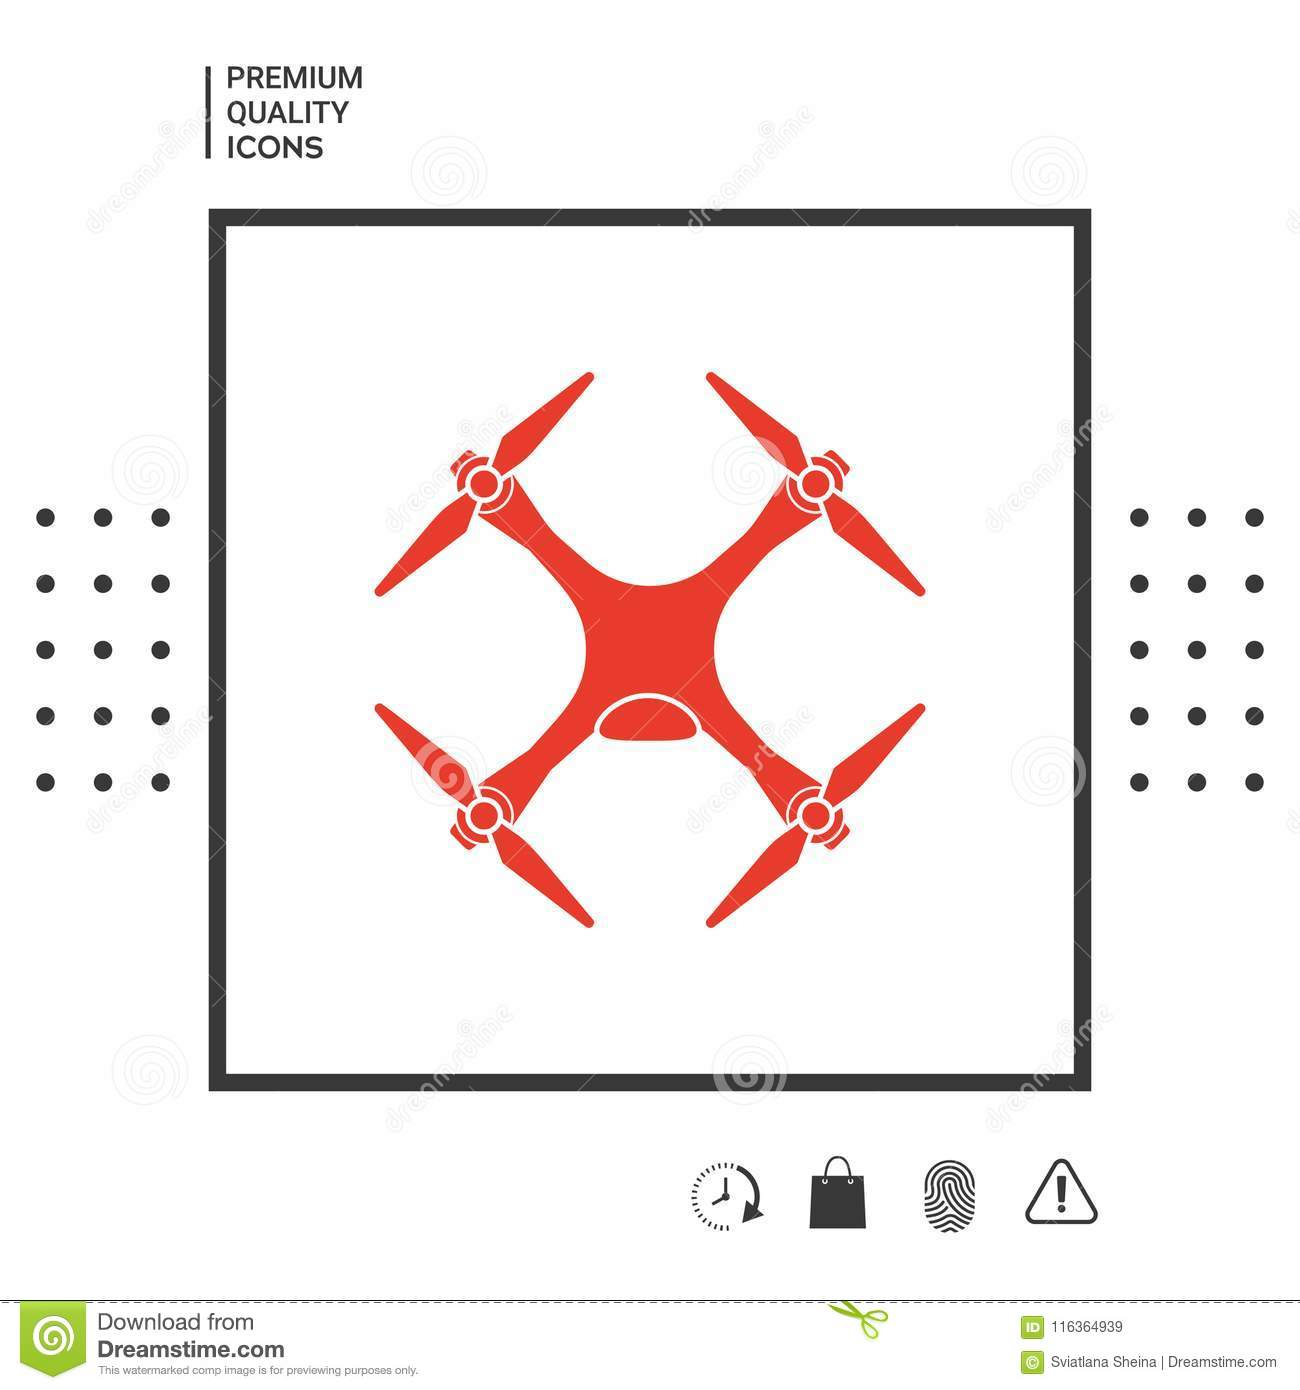 quadcopter drone icon signs and symbols graphic elements for your designstdreamstime